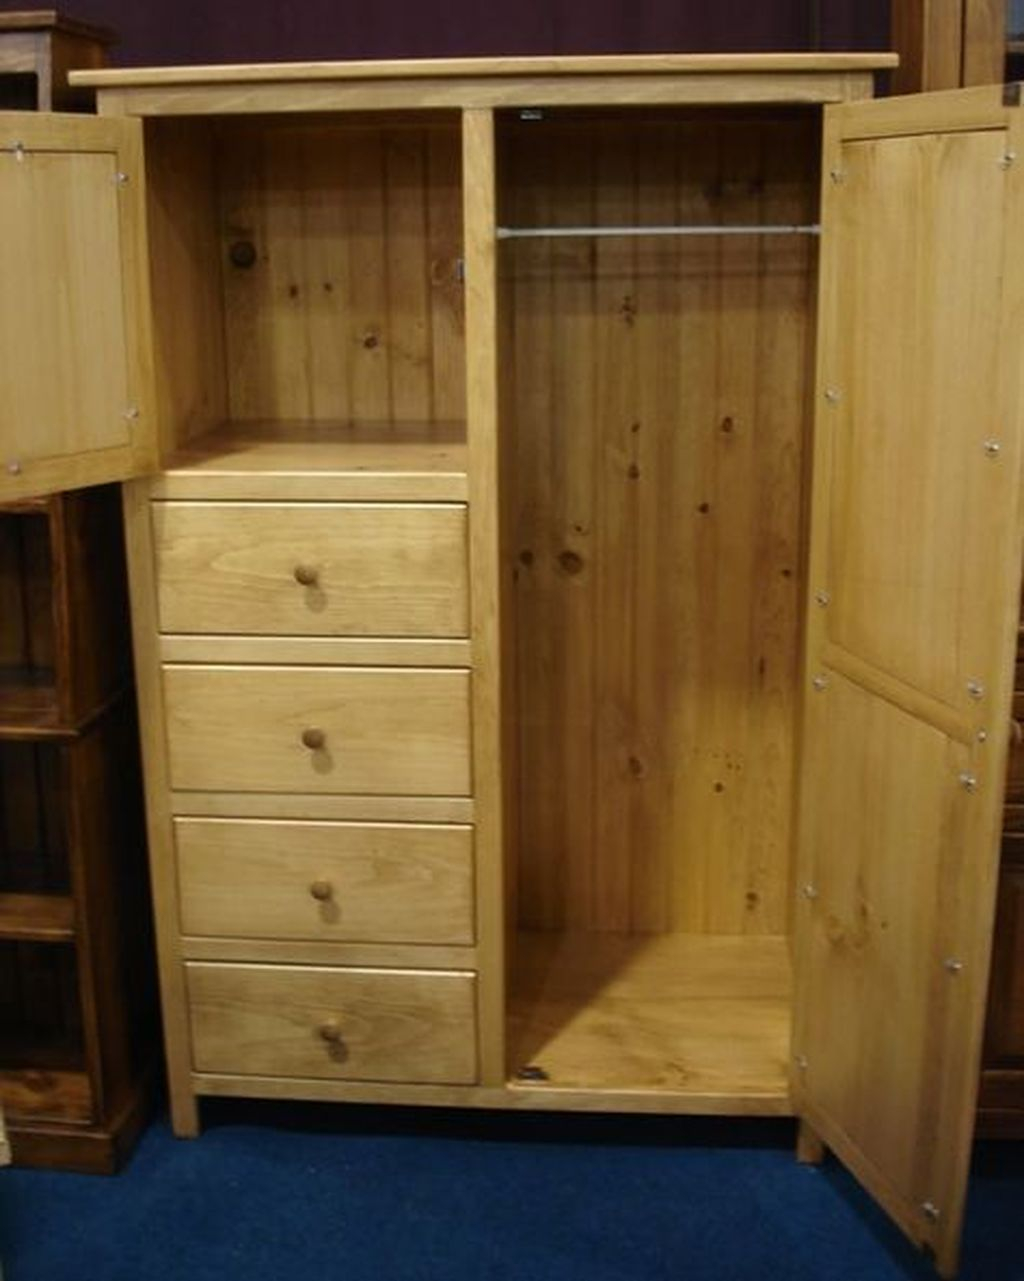 Splendid Wardrobe Design Ideas That You Can Try Current 10